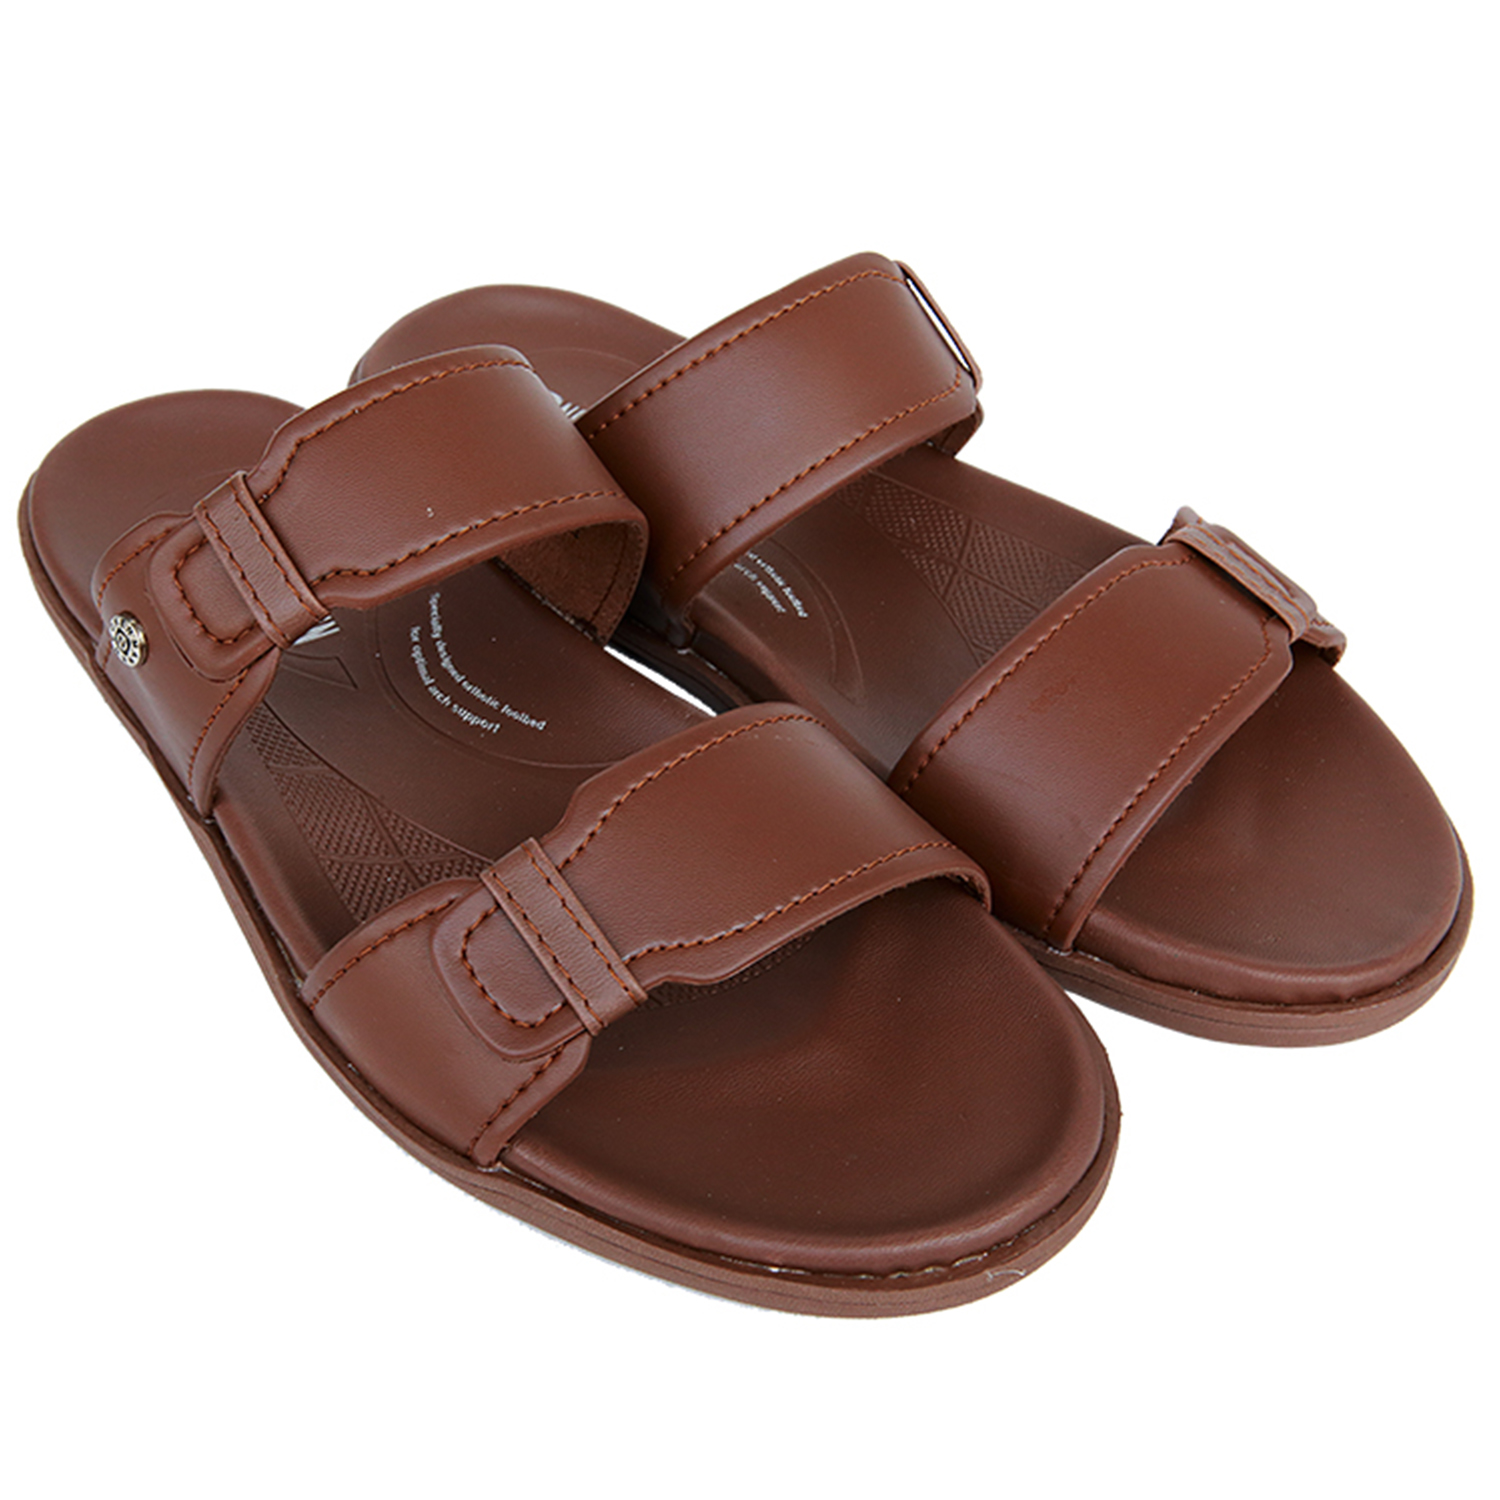 Neckermann Sandal Pria Concord 312 Light Brown | elevenia